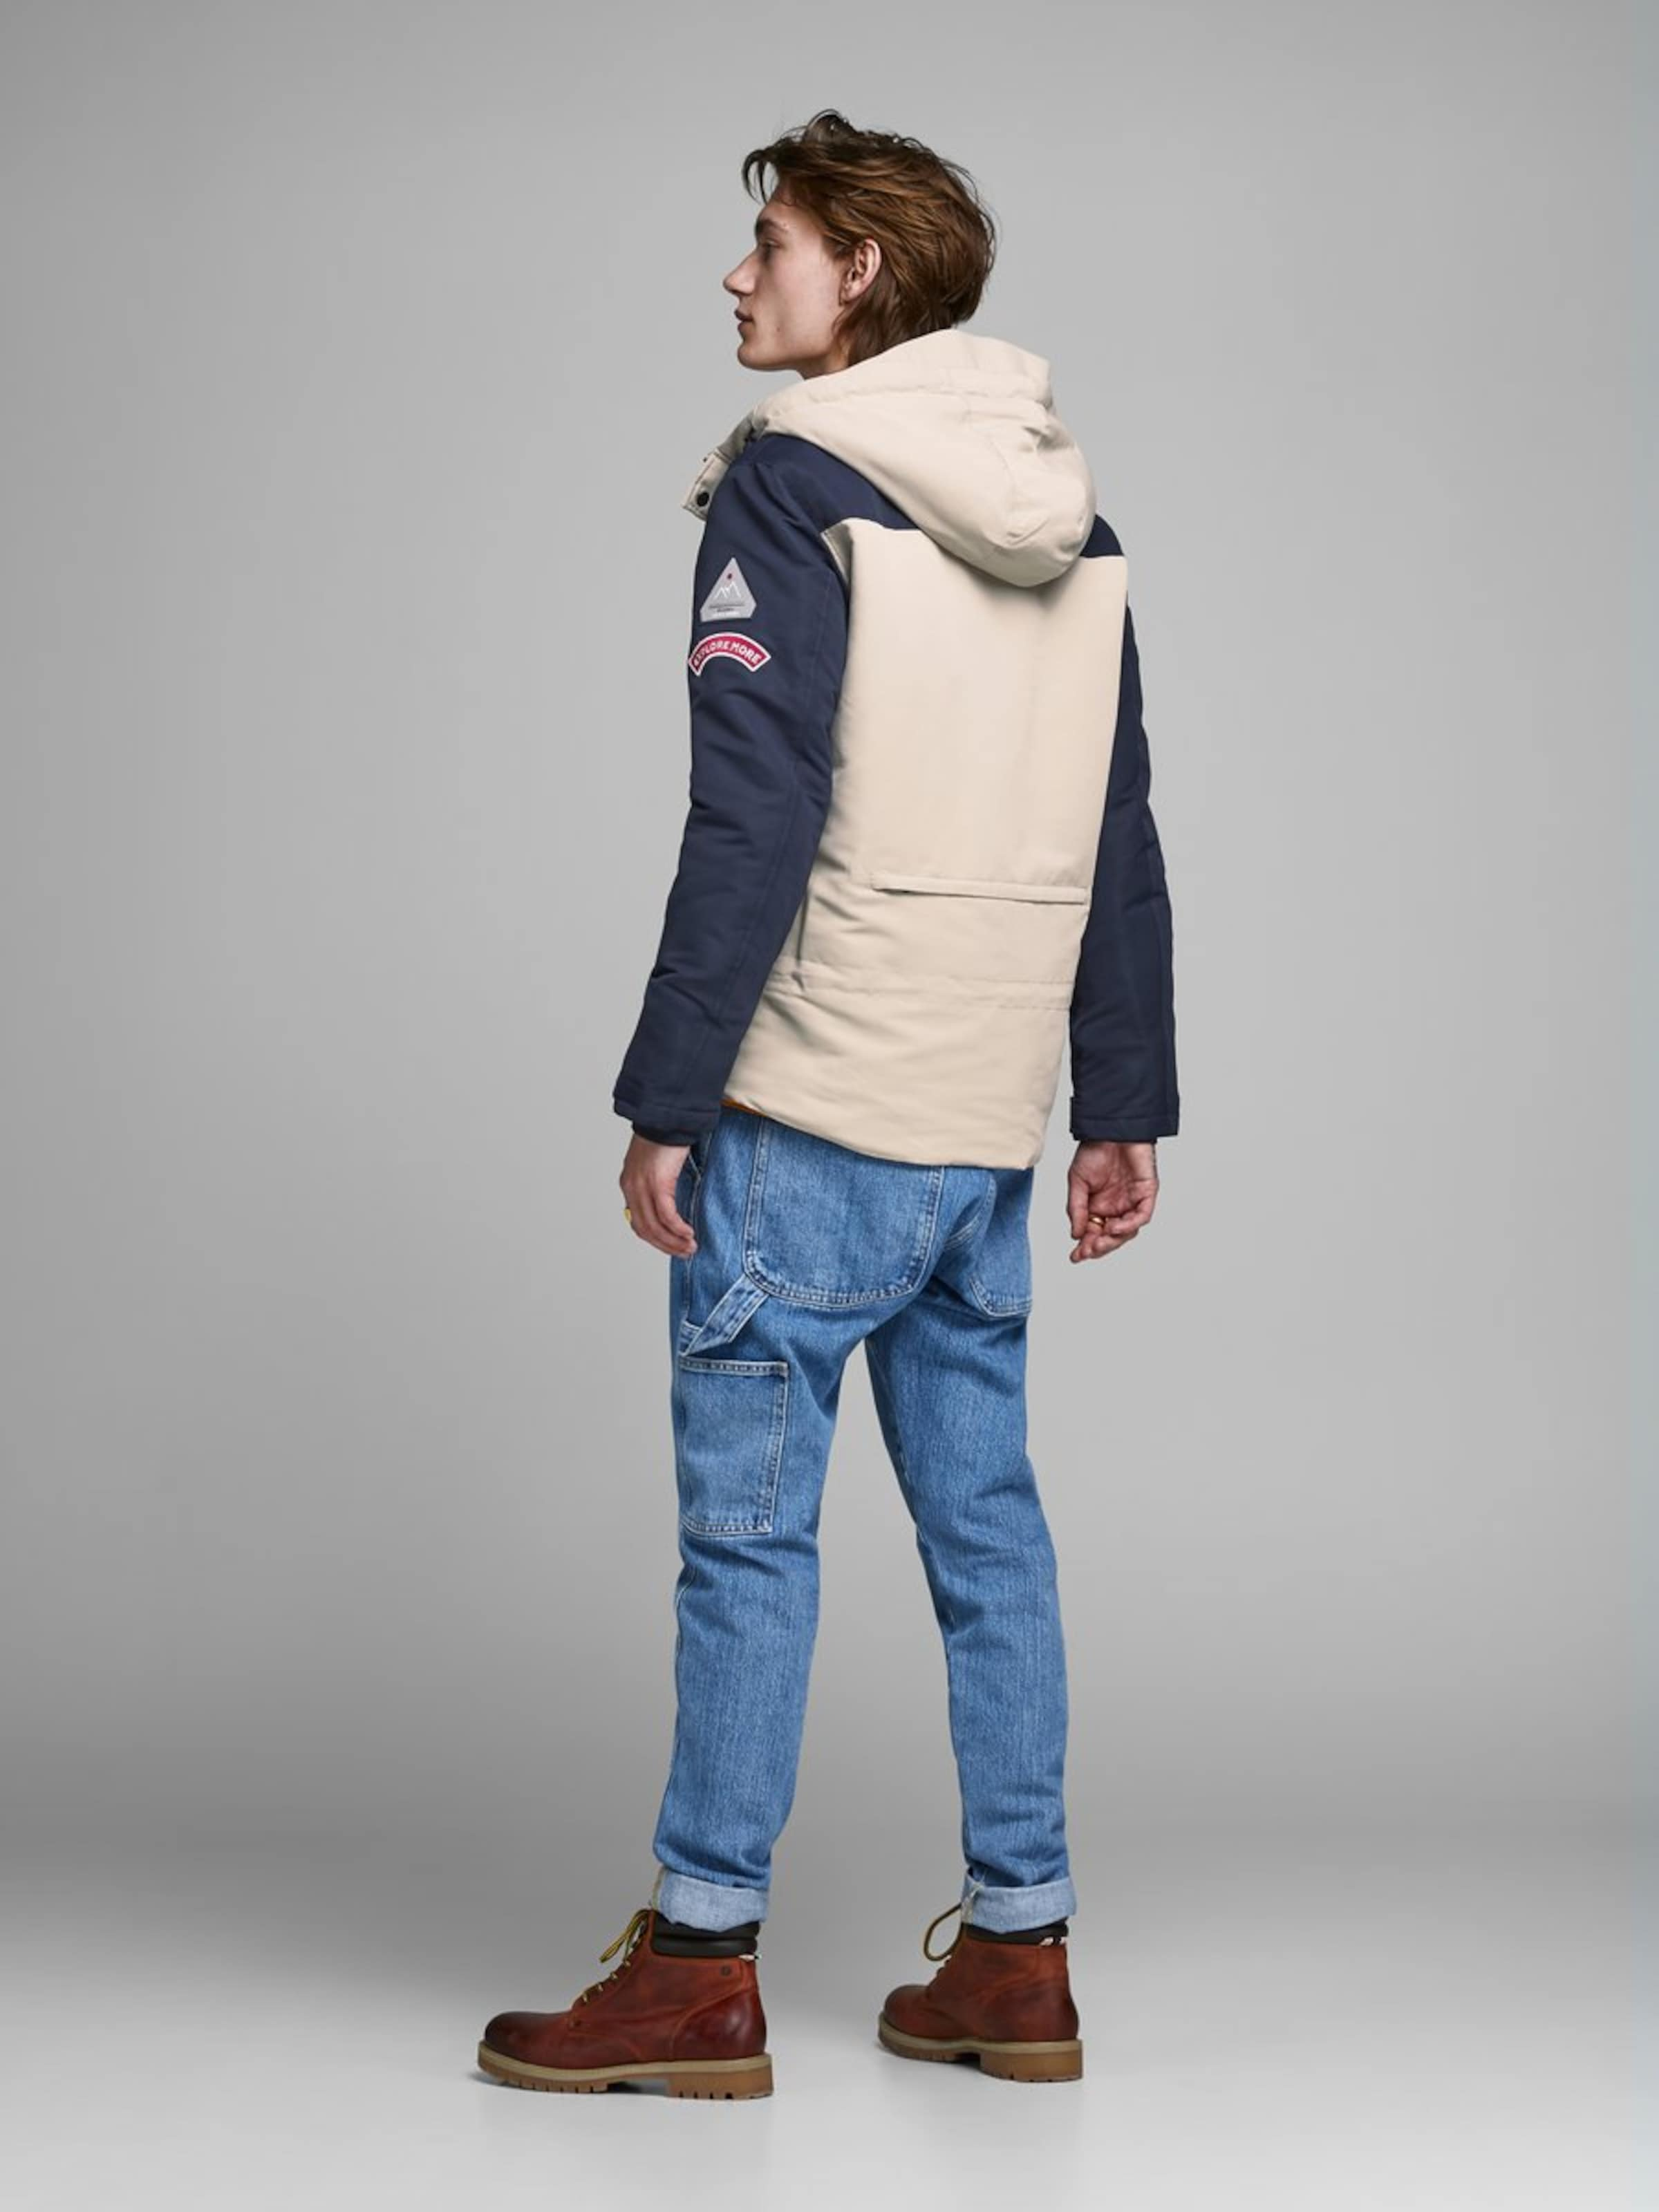 Jones In Jackamp; Jackamp; BeigeBlau Jacke 0OvnmN8w